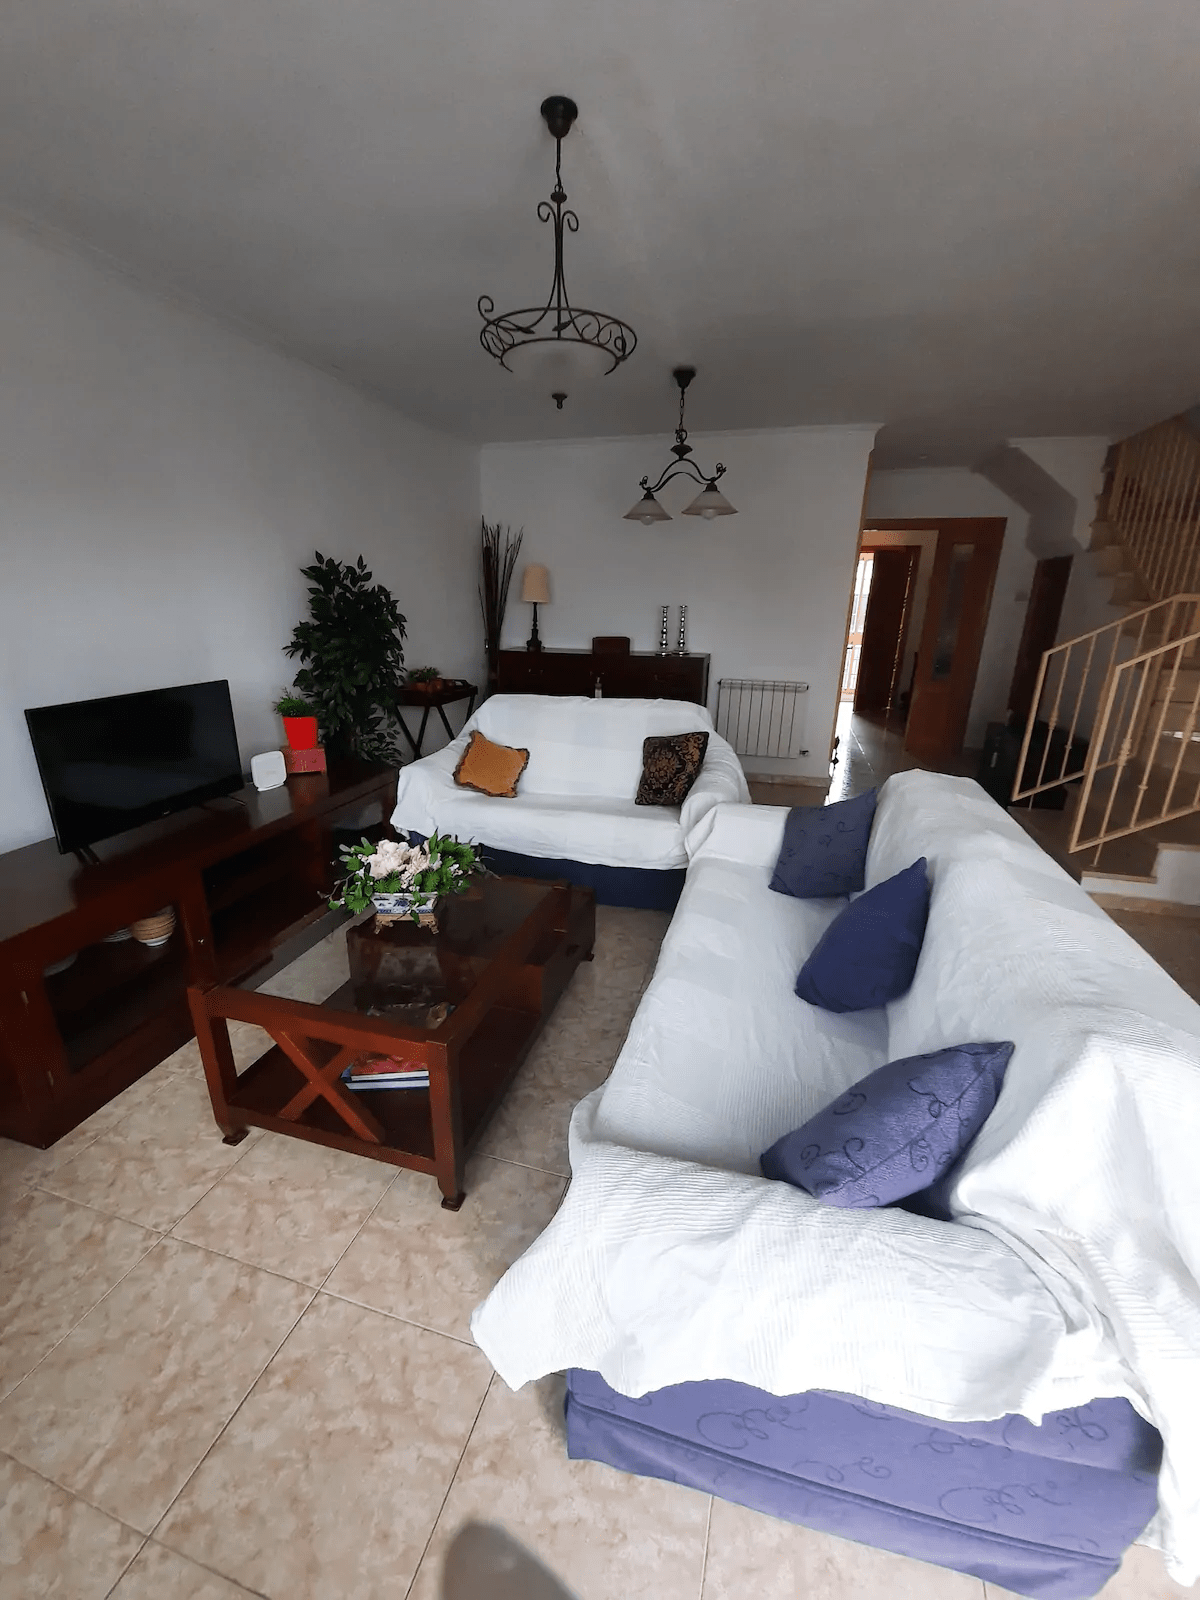 Luxury housing for expats in Madrid